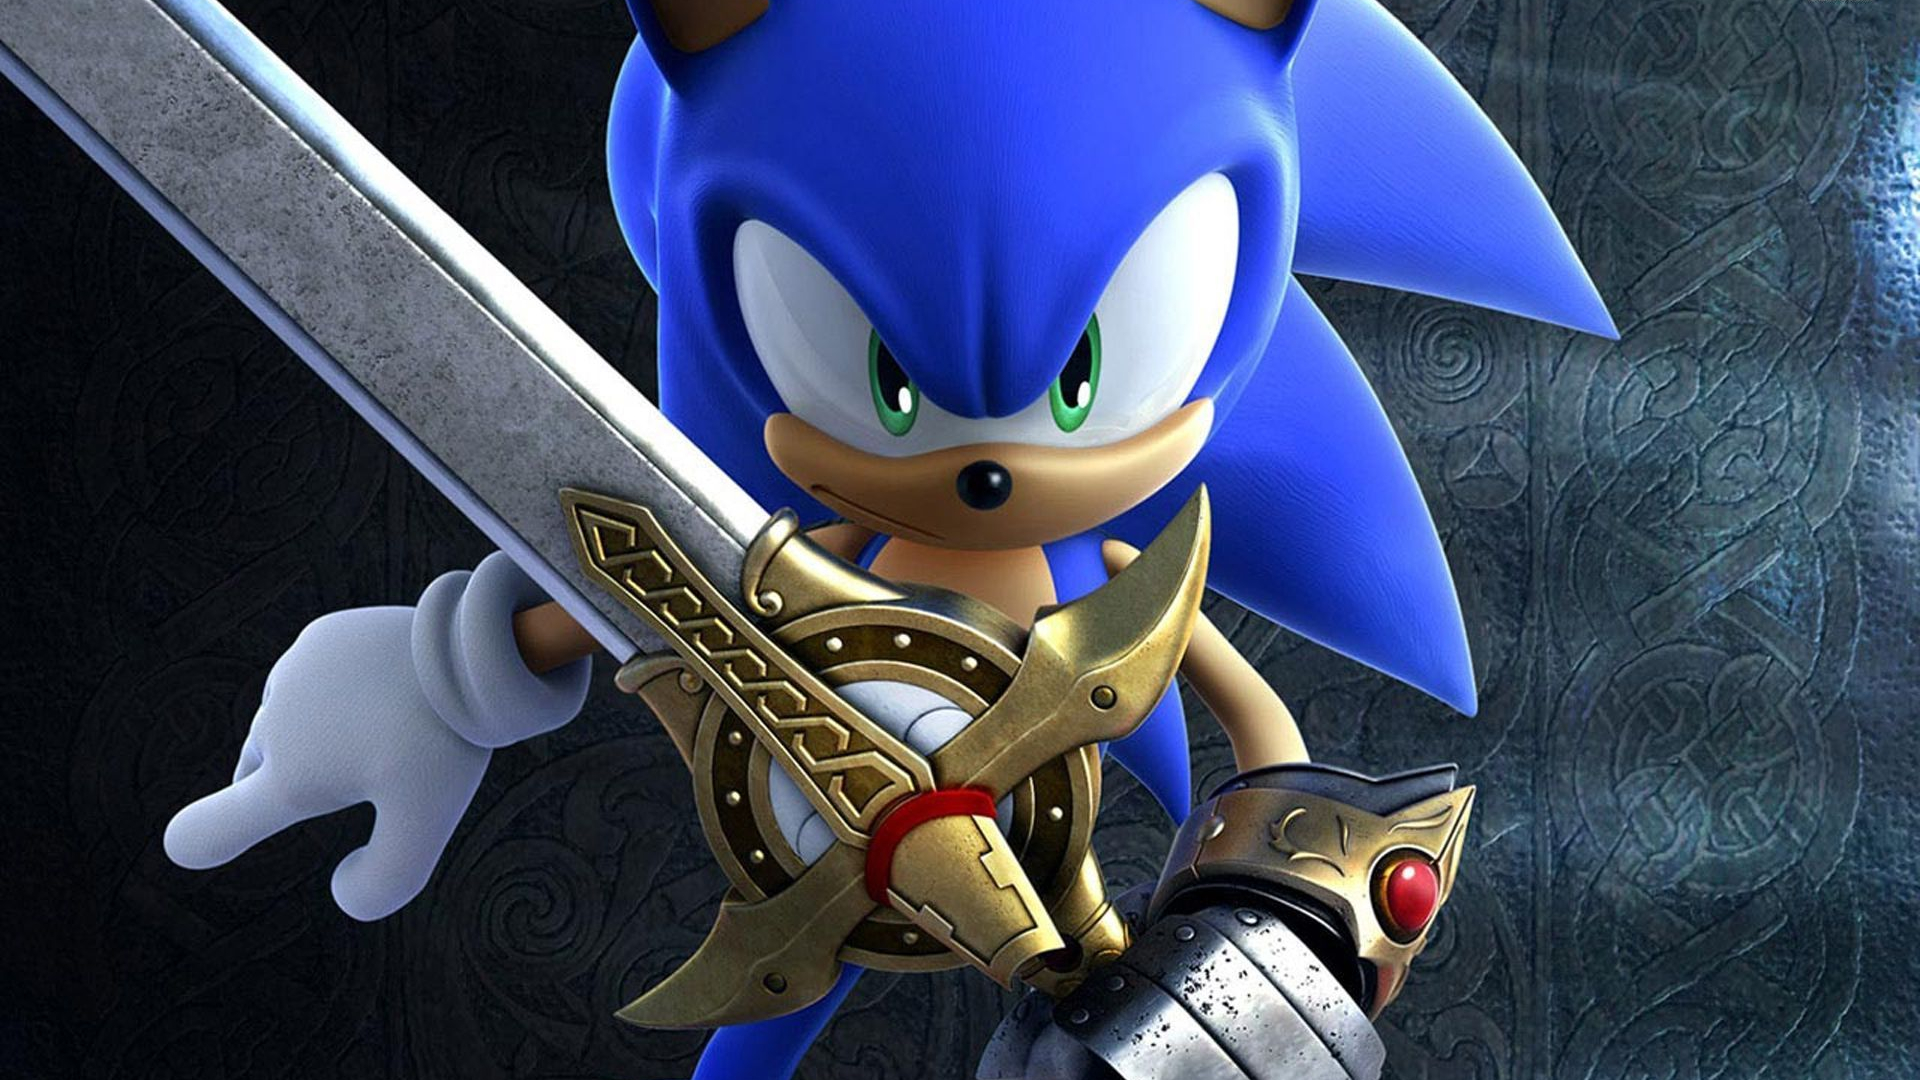 Free Download Games Sonic Sonic The Hedgehog Sonic And The Black